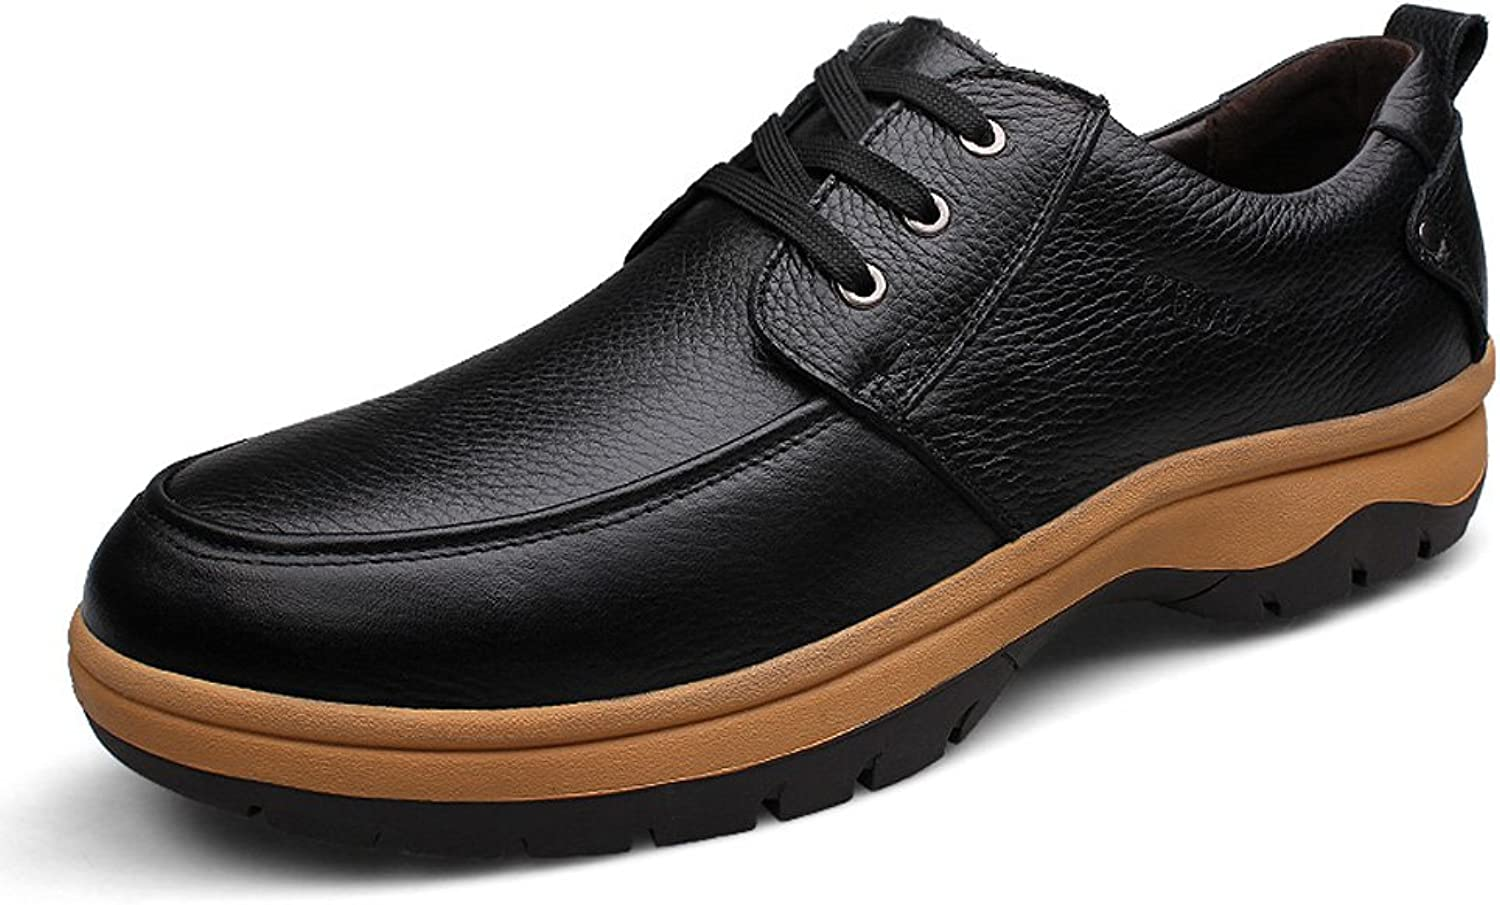 Ailishabroy Men's Large Size Leather Oxfords Casual Low Top Lace Up shoes